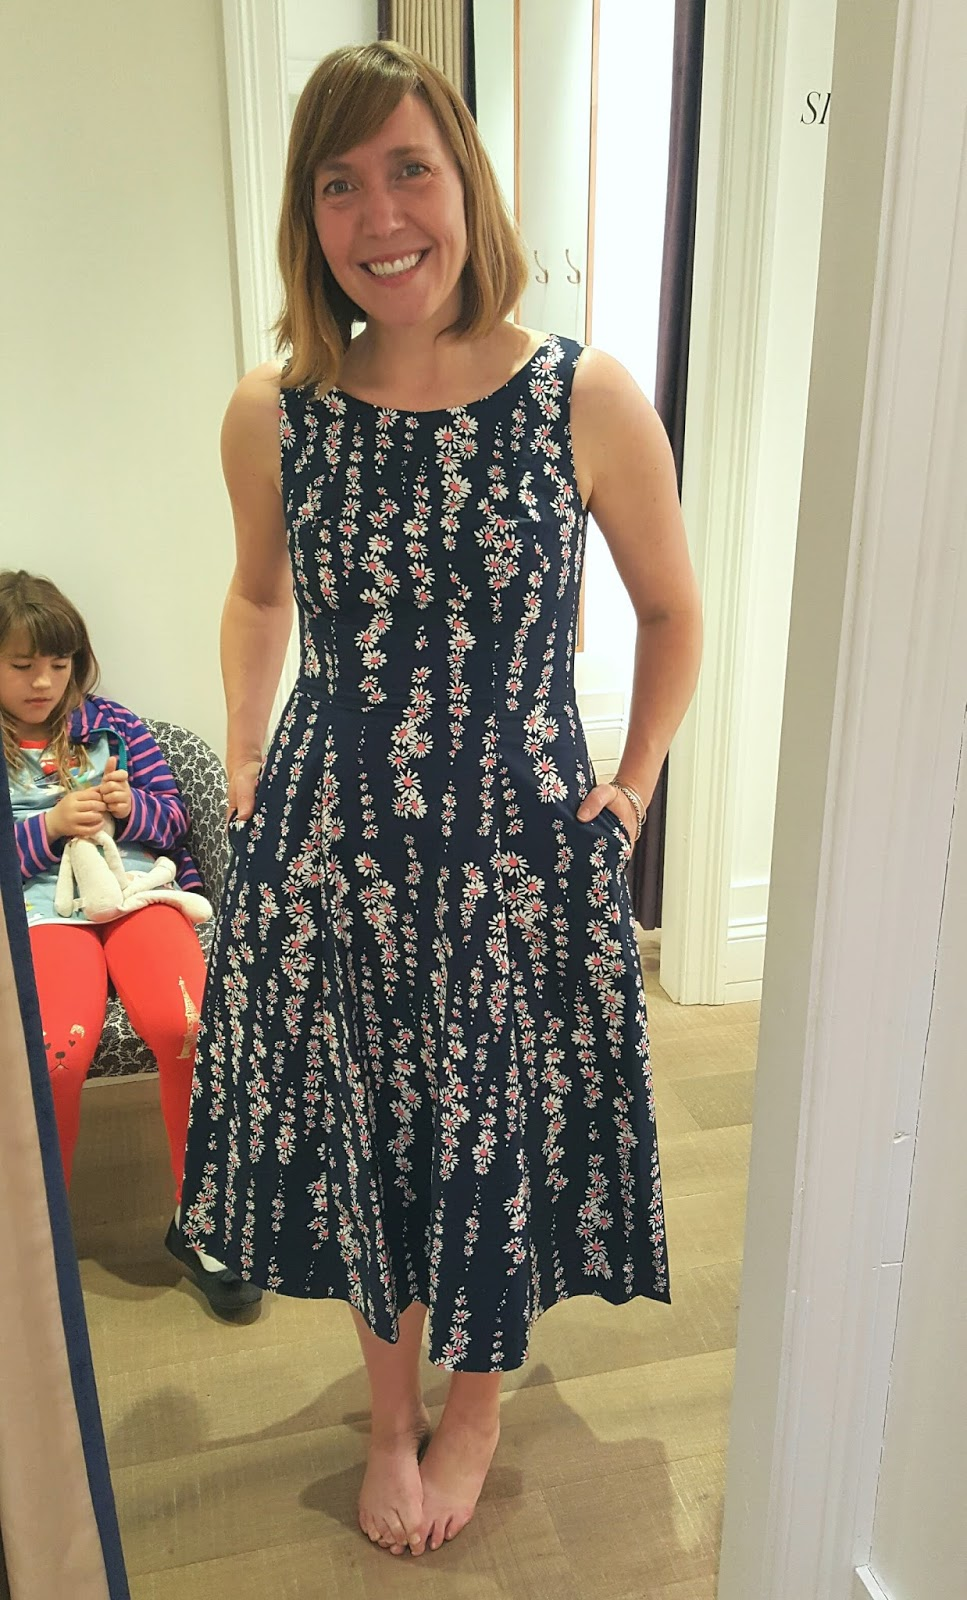 My Superfluities Boden Visit Reviews And A Bit Of A Sale